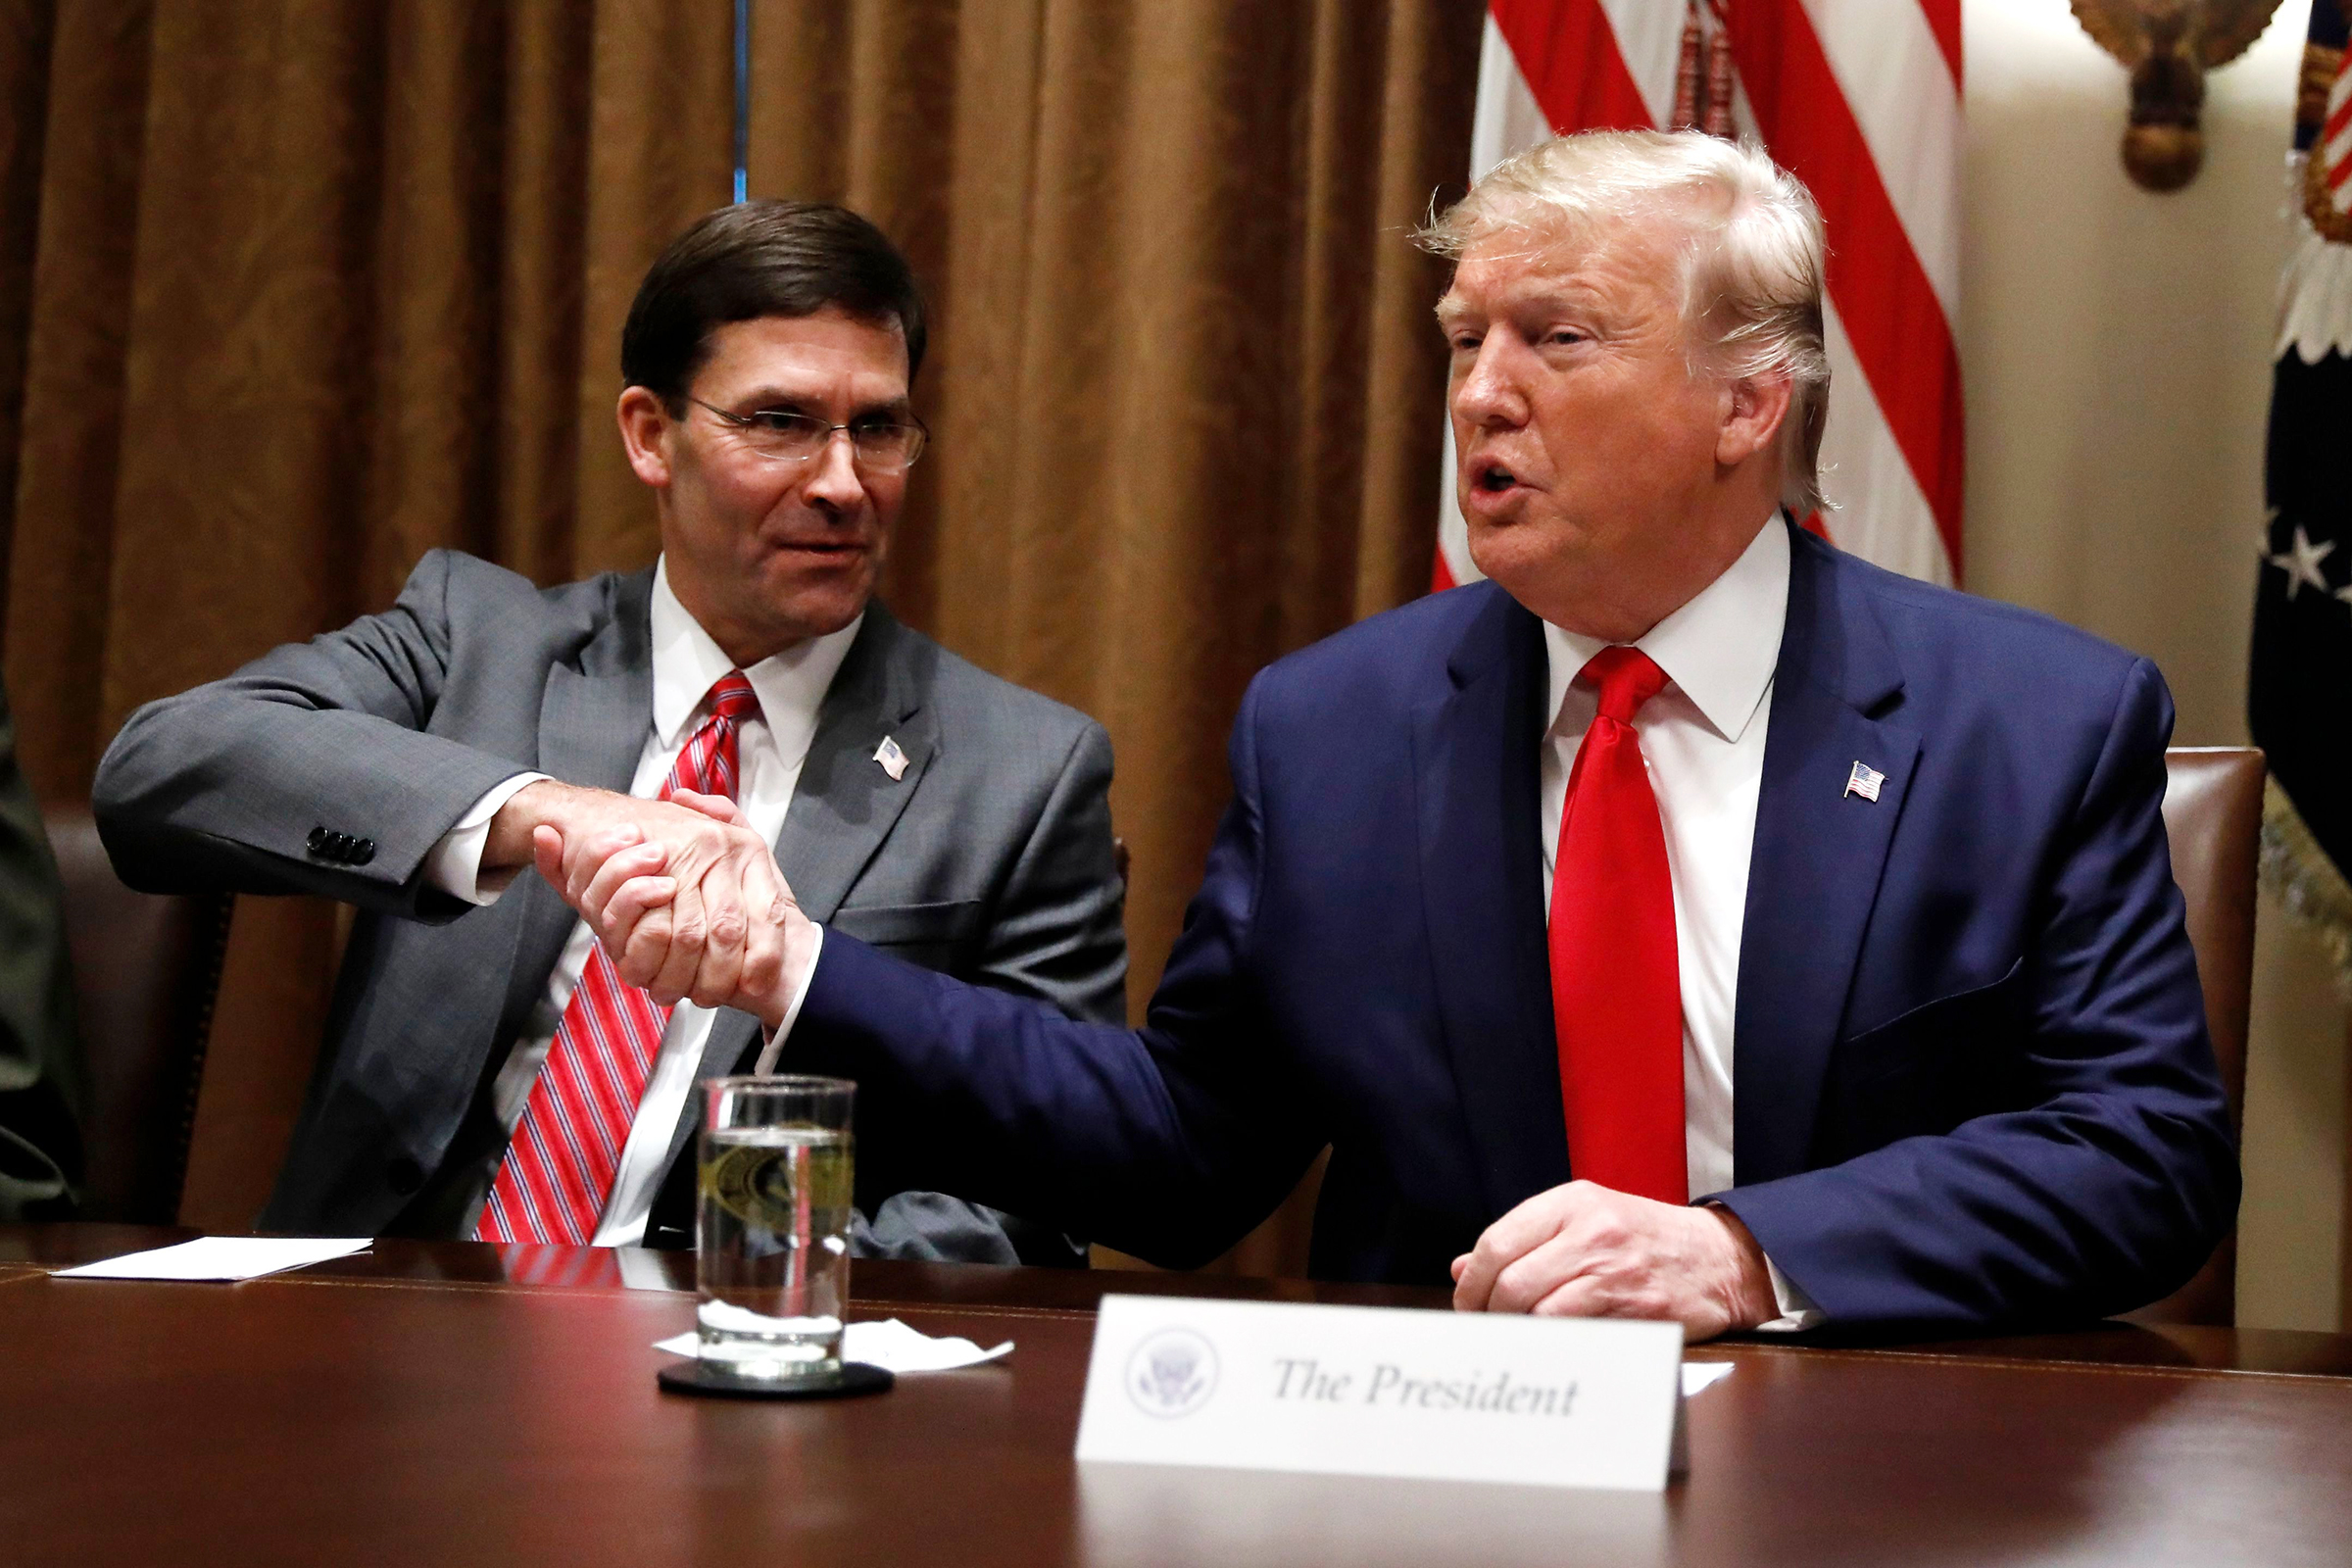 President Donald Trump shakes hands with Defense Secretary Mark Esper during a briefing with senior military leaders in the Cabinet Room at the White House in WashingtonTrump, Washington, USA - 07 Oct 2019